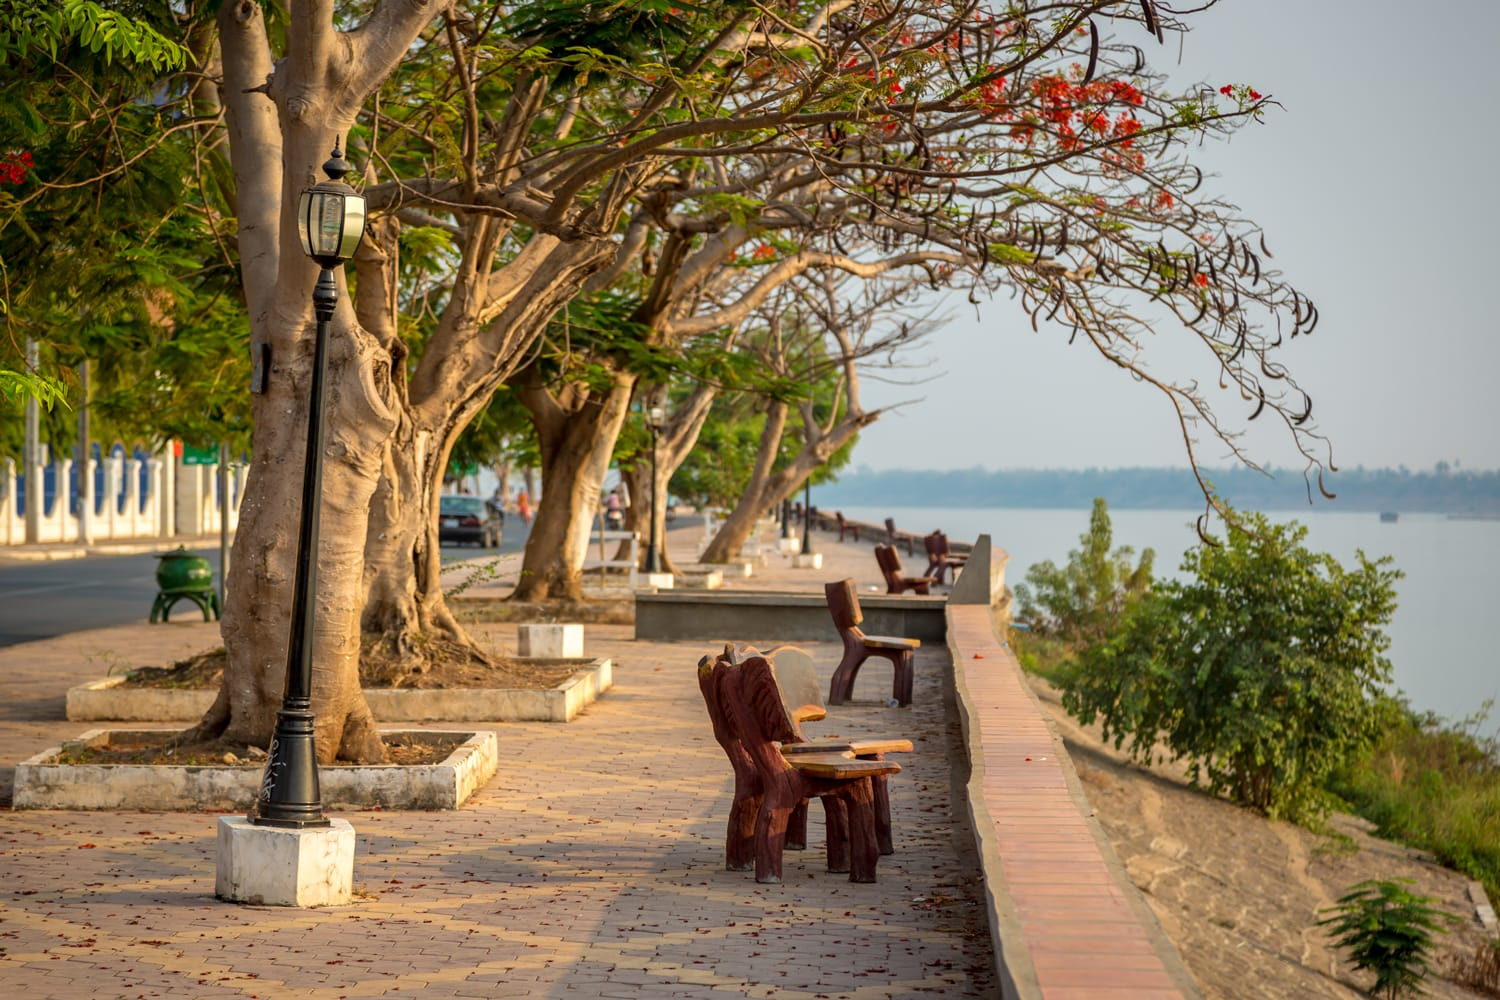 Nice open area in front of the Mekong River in Kratie City, northern of Cambodia.